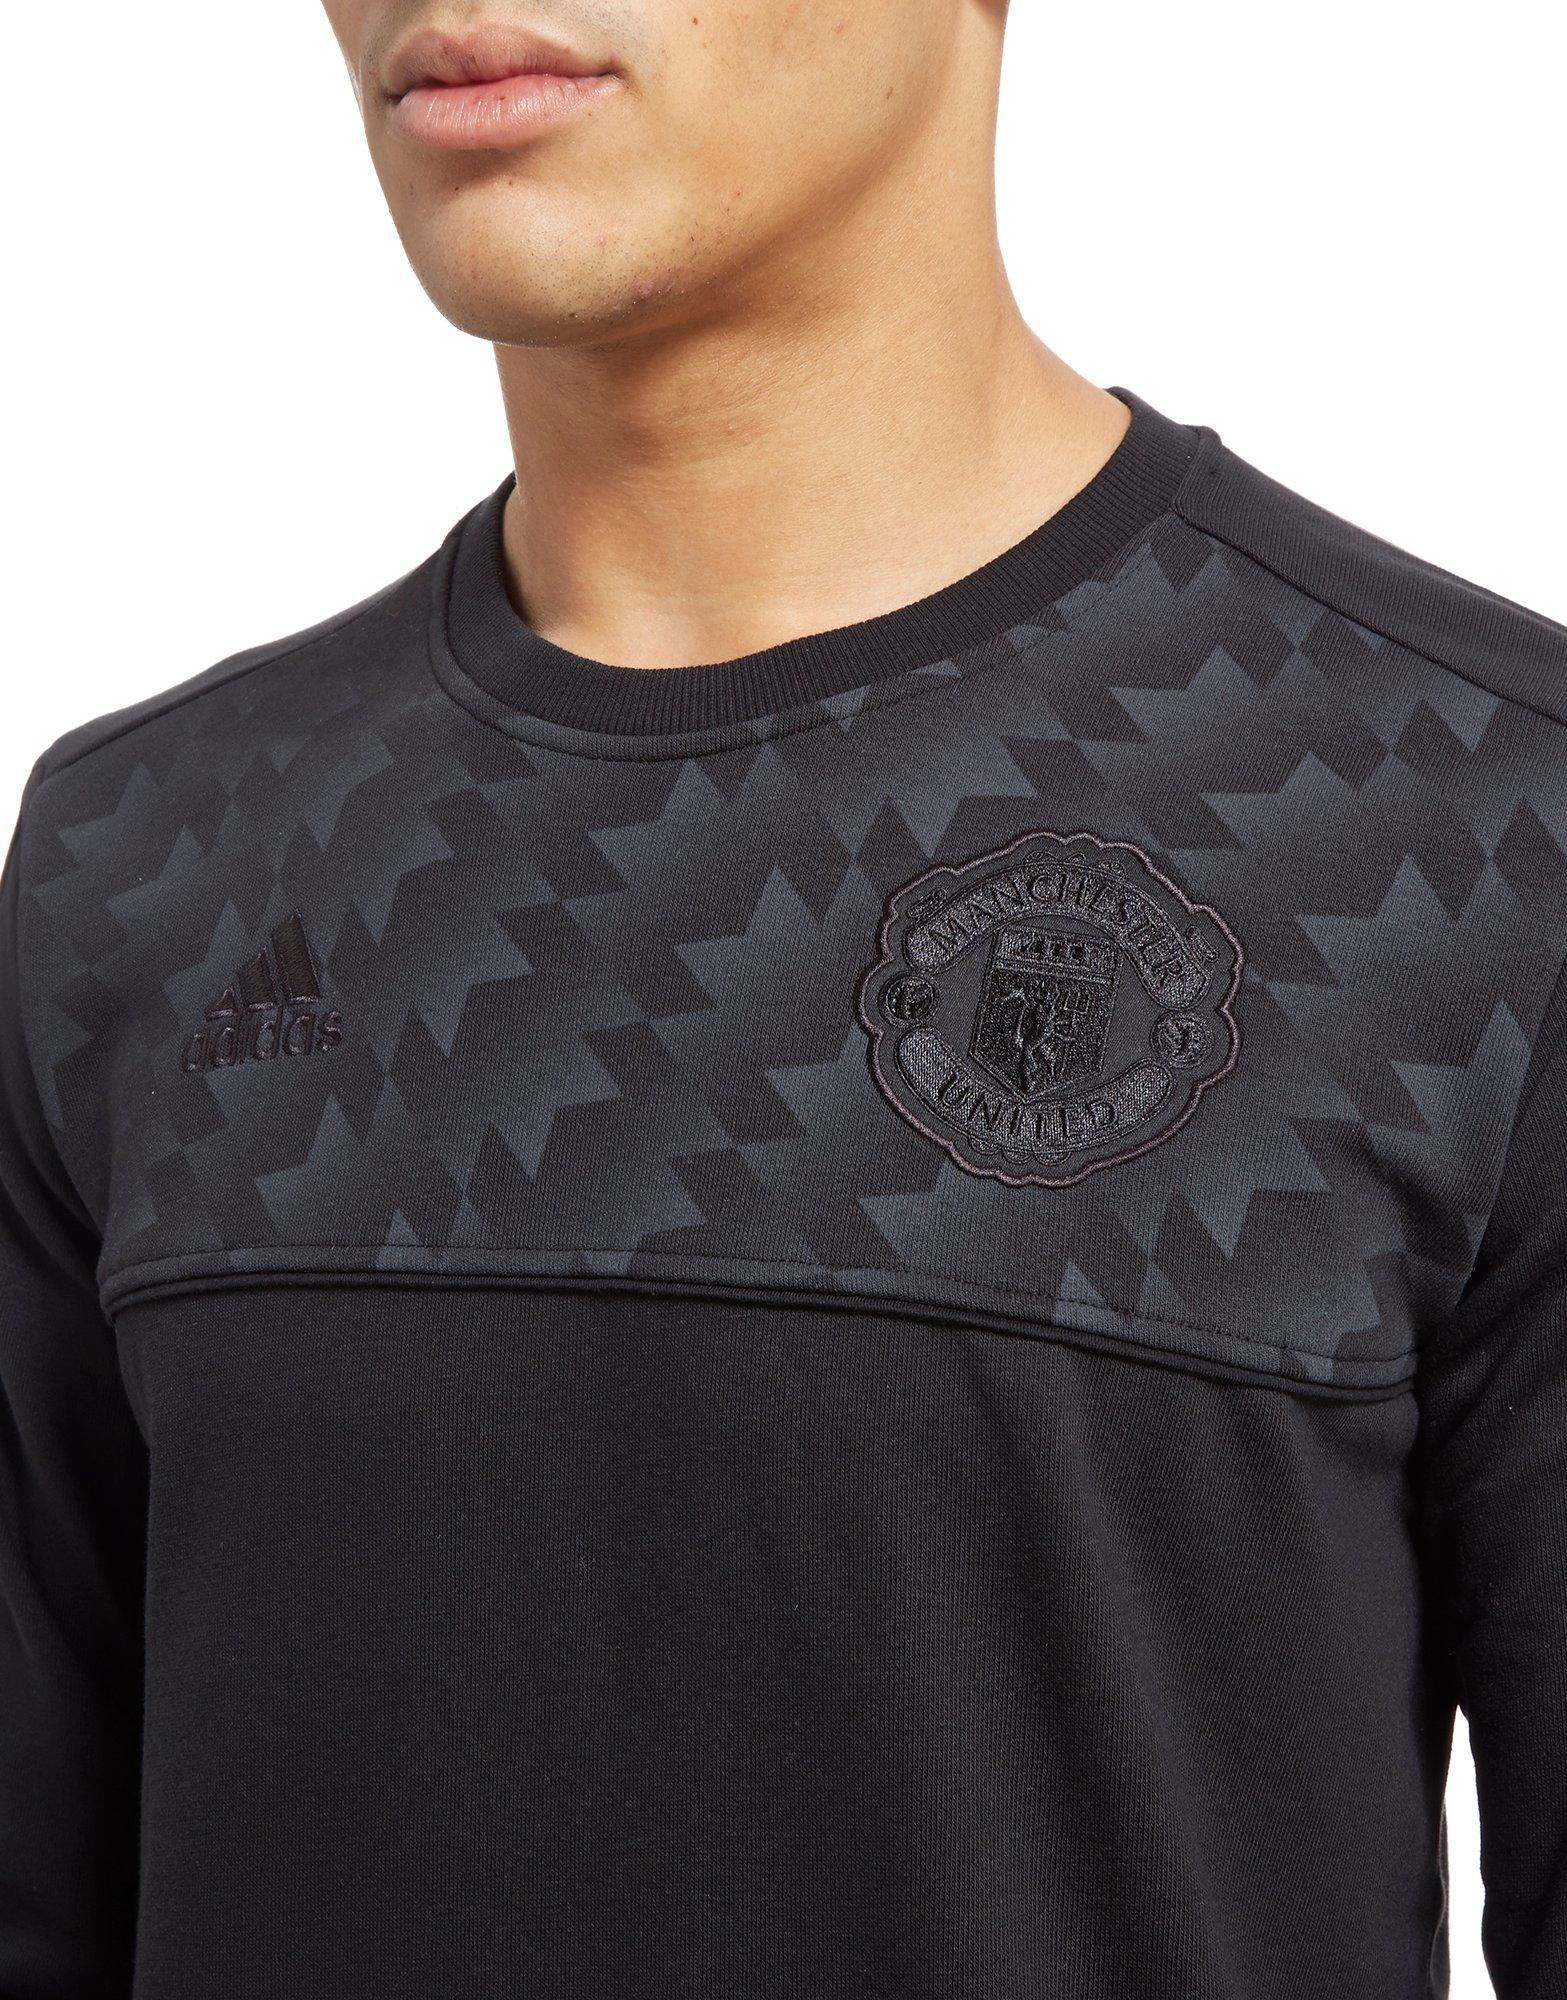 adidas Synthetic Manchester Utd 2017 Seasonal Specials Sweatshirt in Black for Men